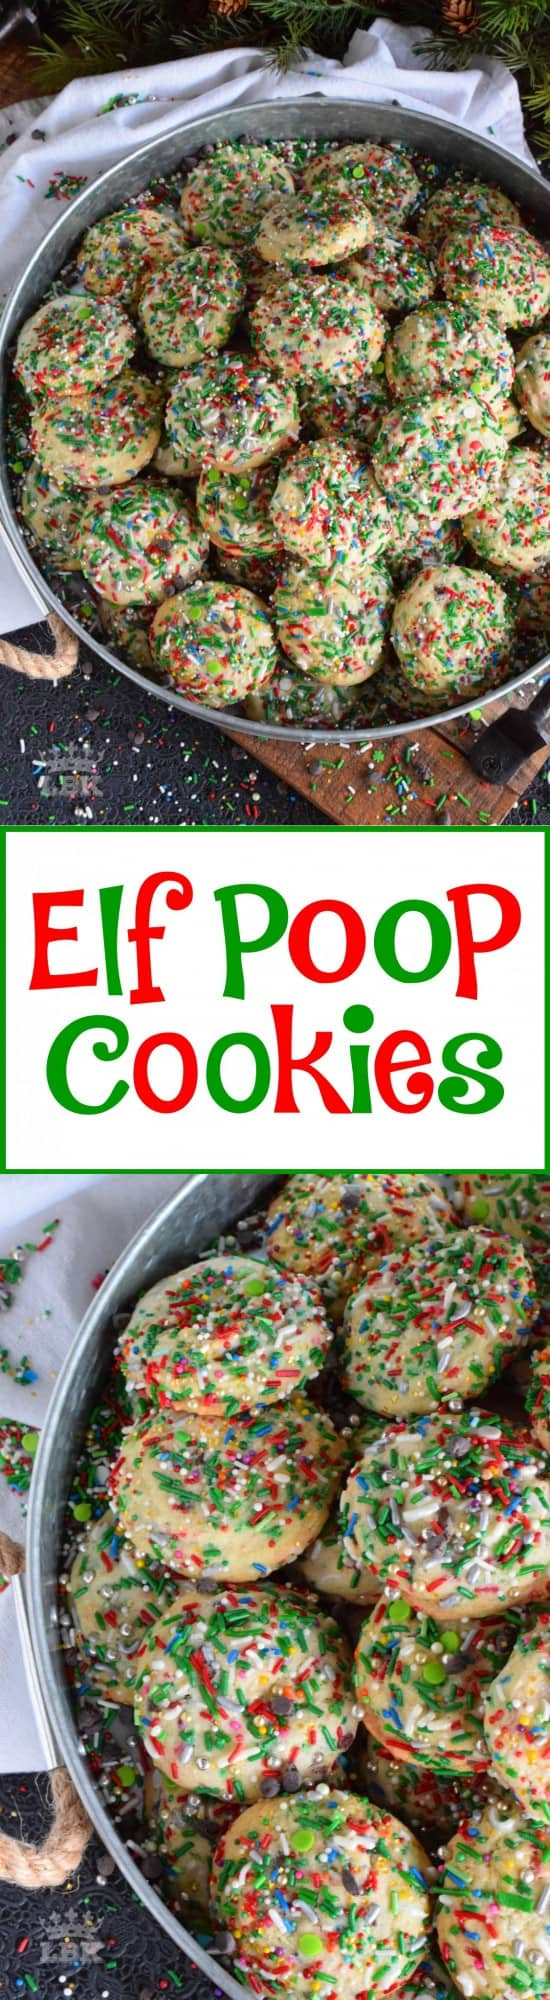 Elf Poop Cookies - Much like Buddy, these Elf Poop Cookies are peppermint flavoured and packed with sprinkles, chocolate, and of course, sugar!  #elf #cookies #sprinkle #poop #christmas #holiday #baking